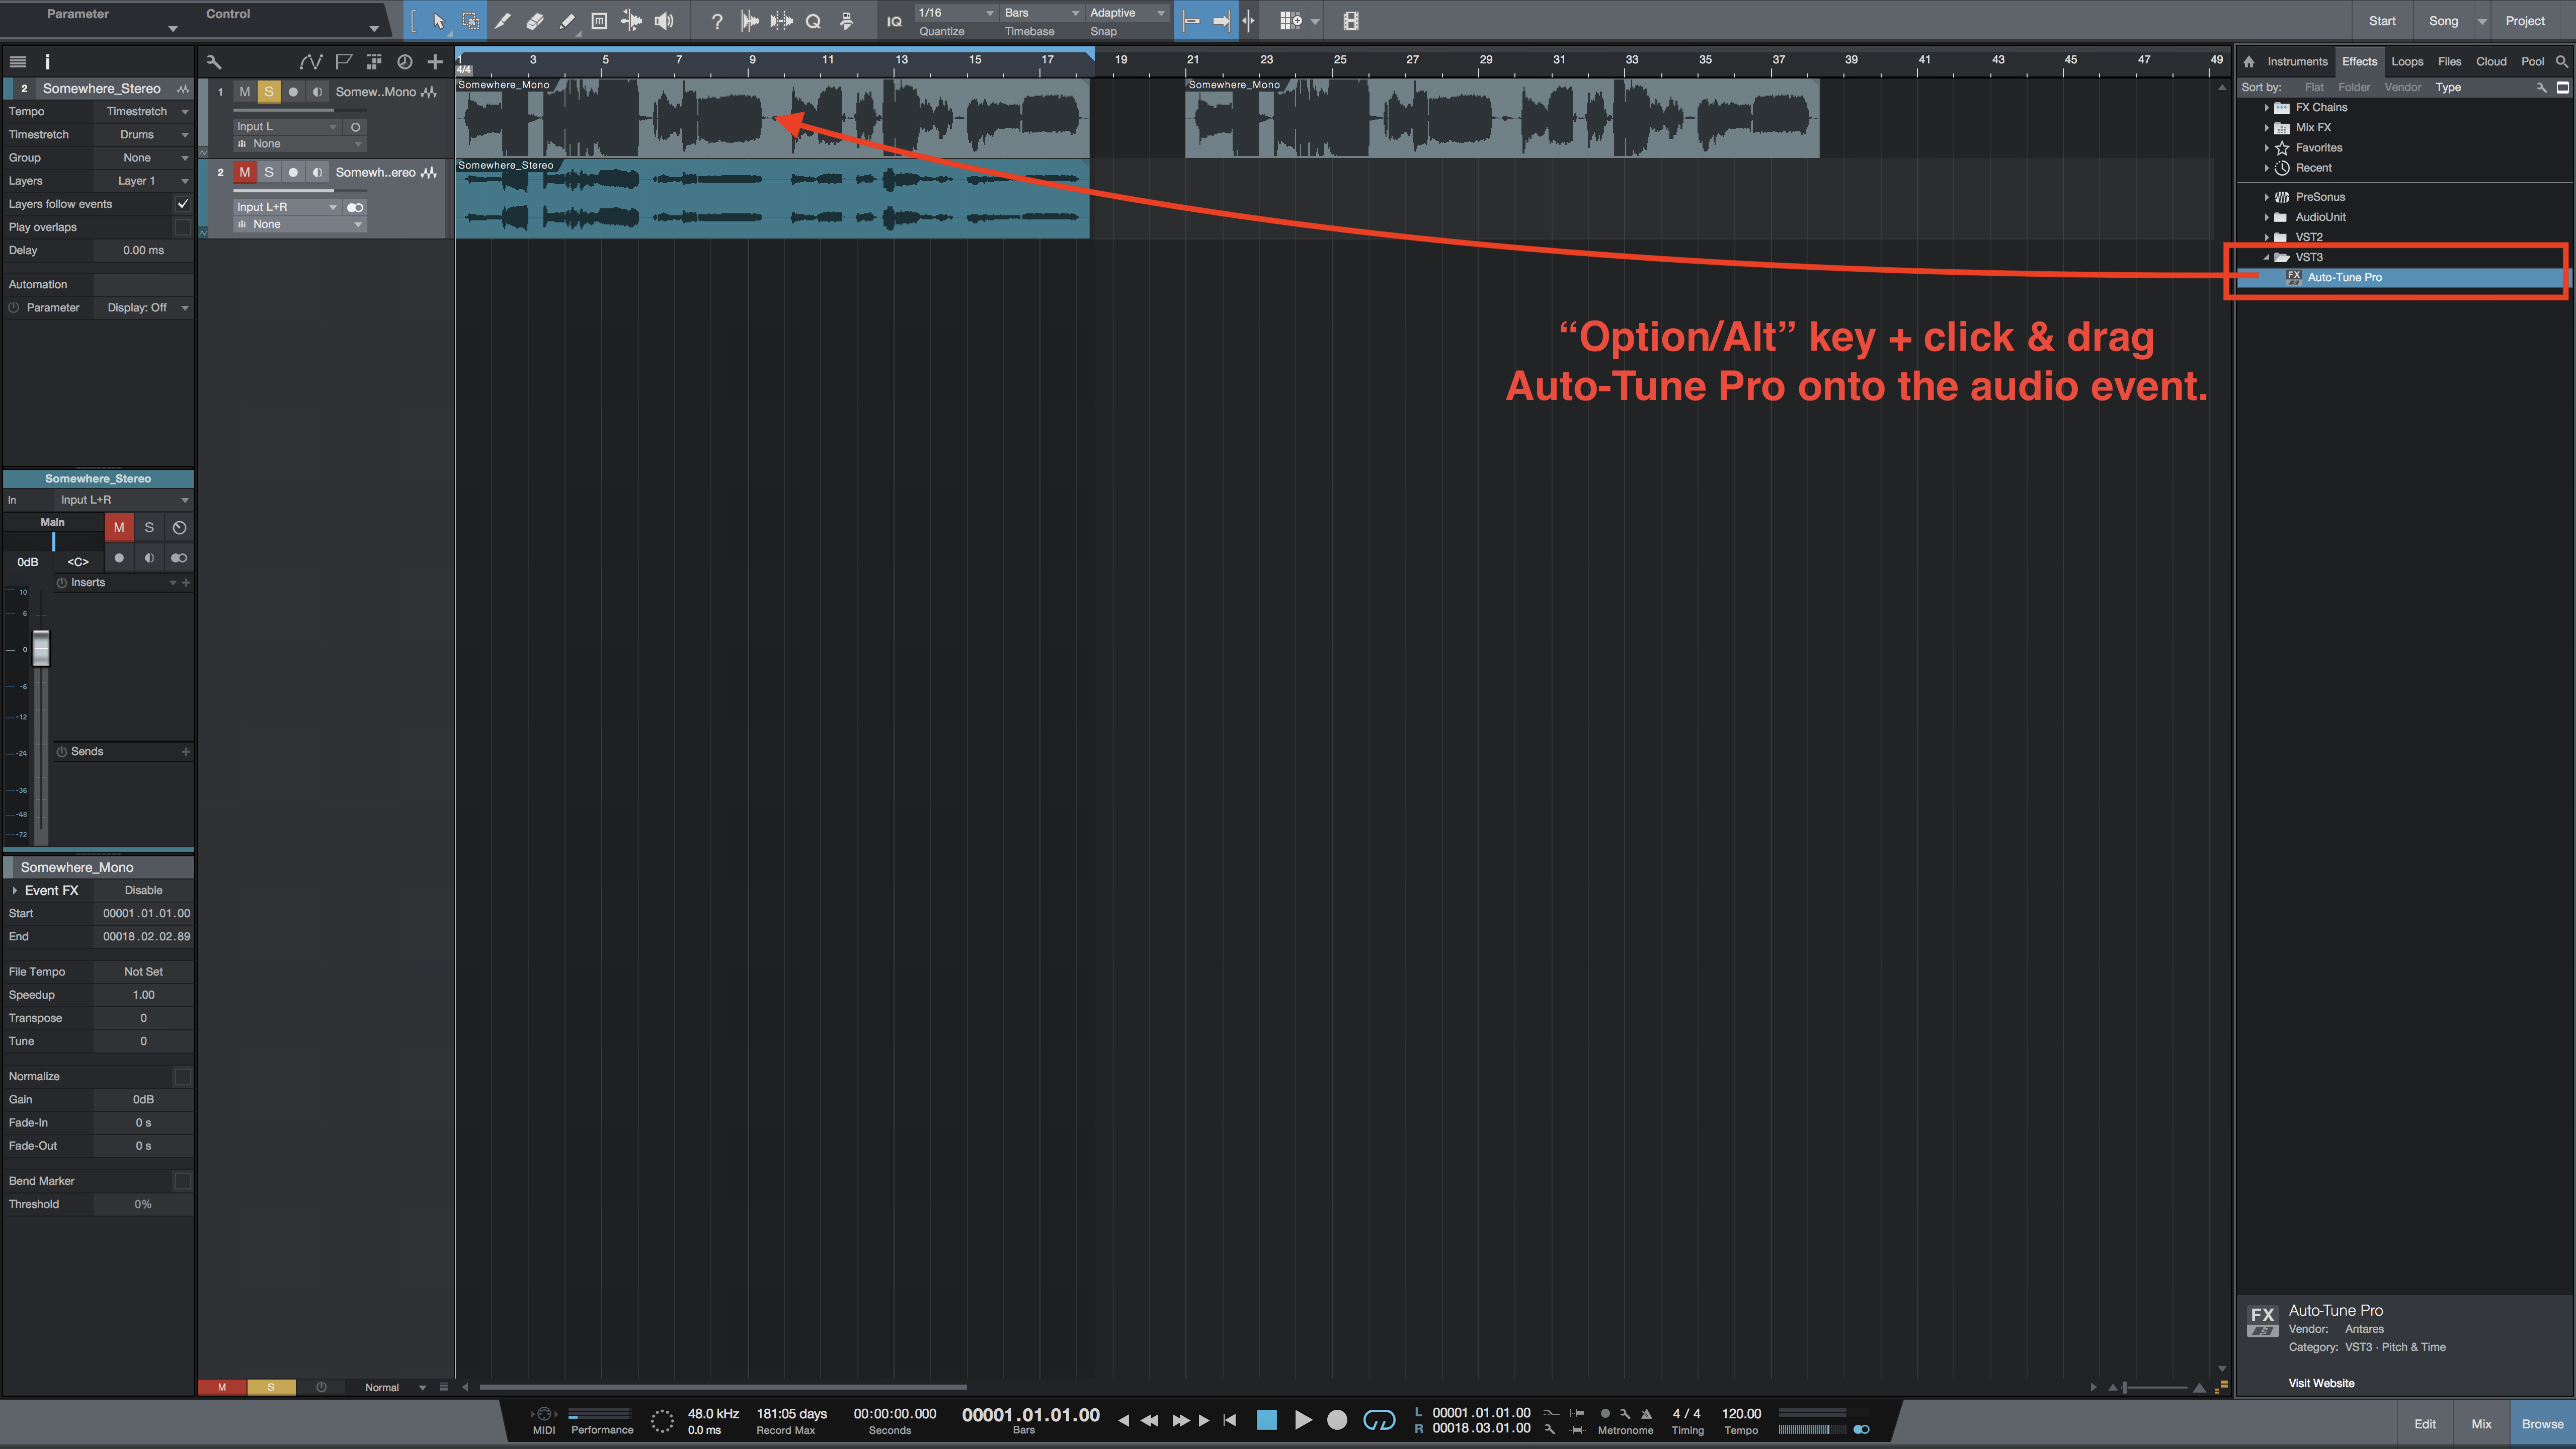 How to insert Auto-Tune Pro as an ARA plug-in in Studio One 3